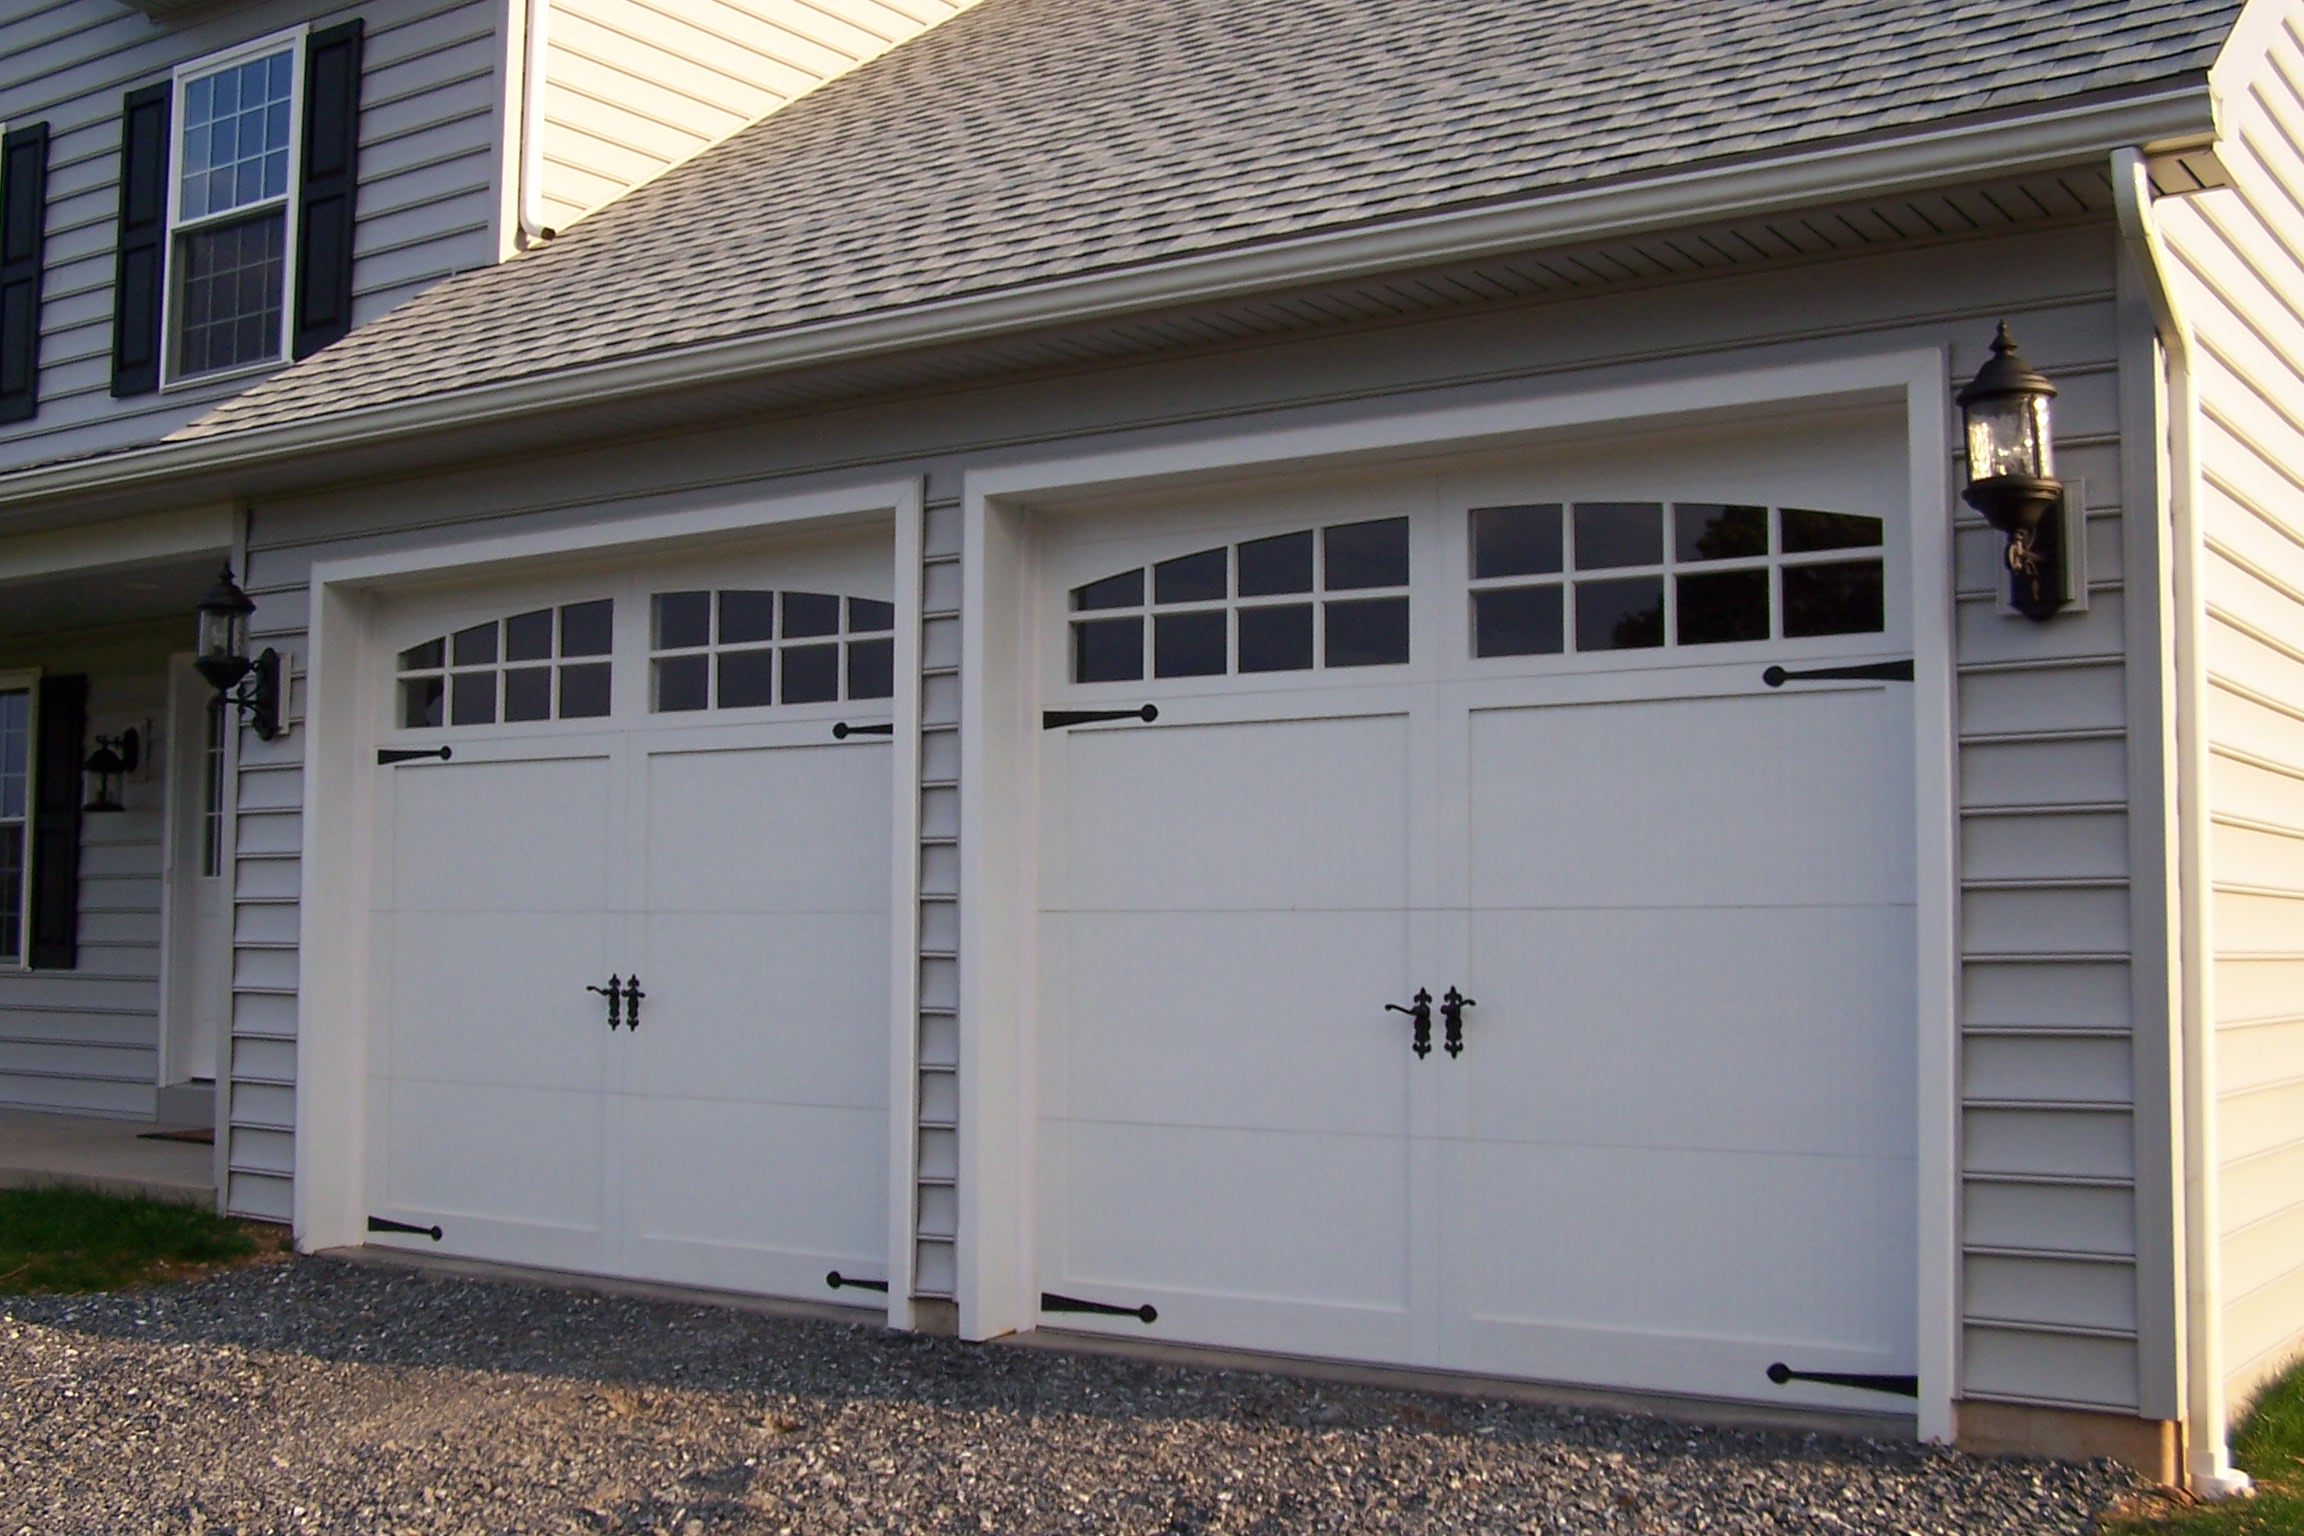 File sectional type overhead garage door jpg wikipedia for Overhead garage door sizes